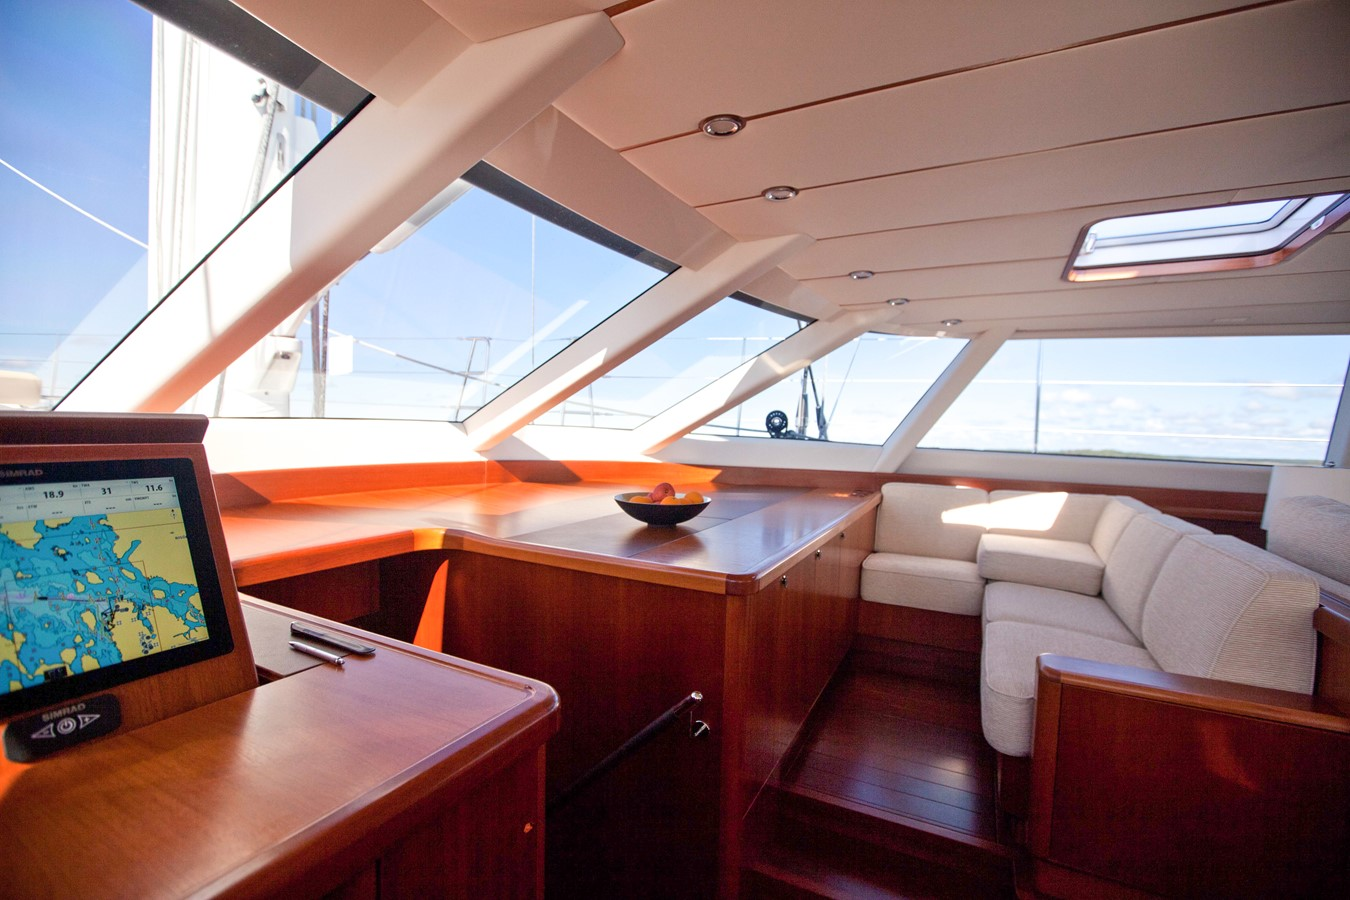 2014 NAUTOR'S SWAN  Performance Sailboat 1768975